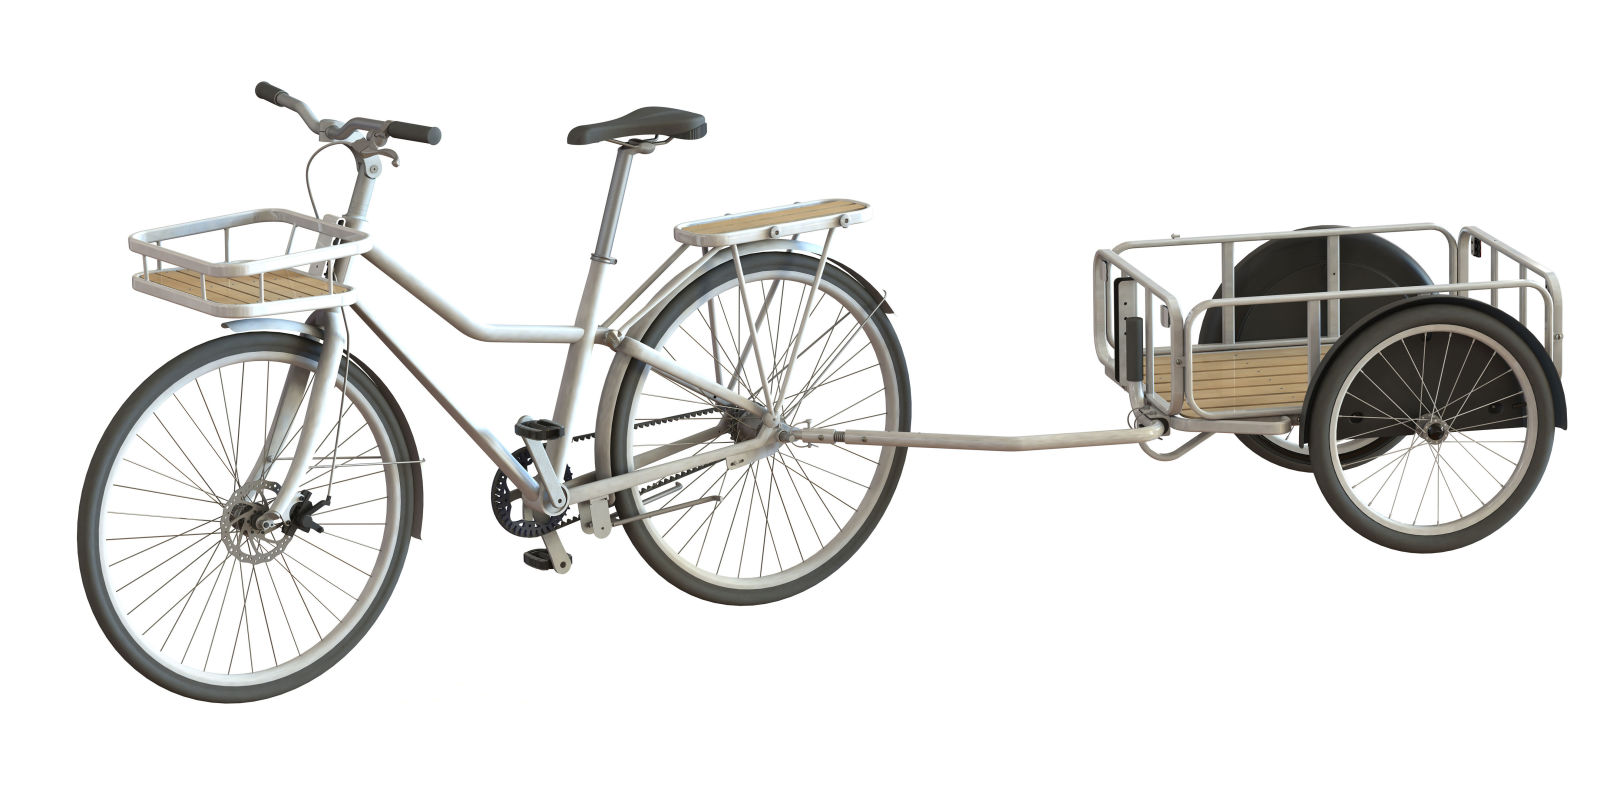 Ikea Made A Bike